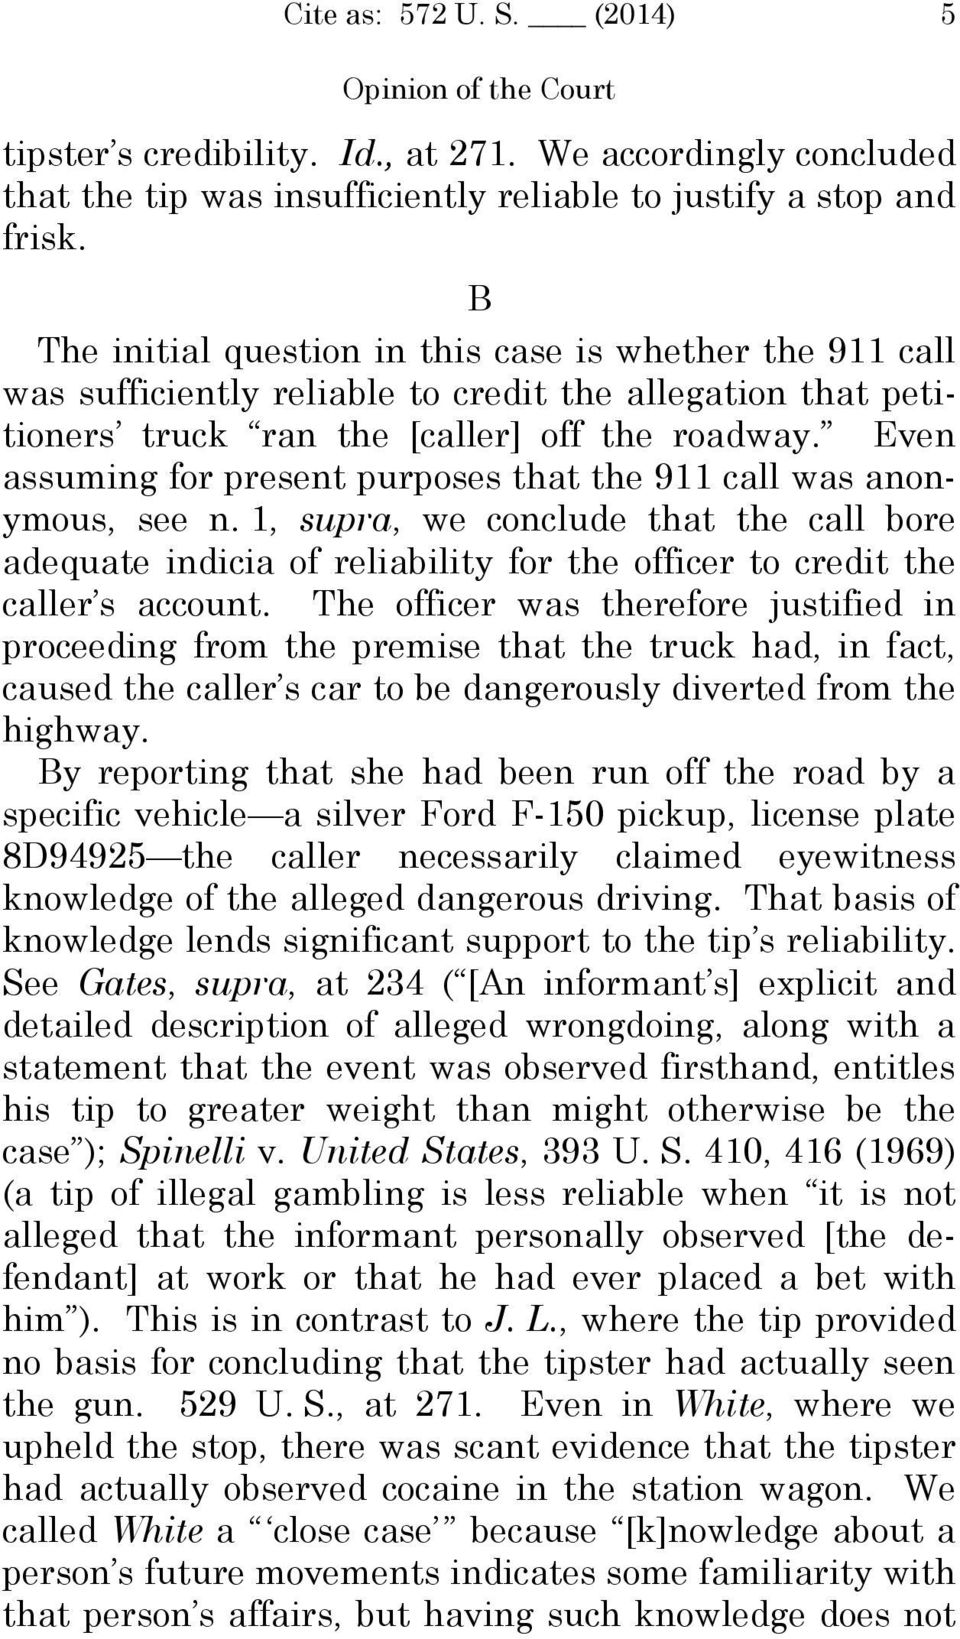 Even assuming for present purposes that the 911 call was anonymous, see n. 1, supra, we conclude that the call bore adequate indicia of reliability for the officer to credit the caller s account.